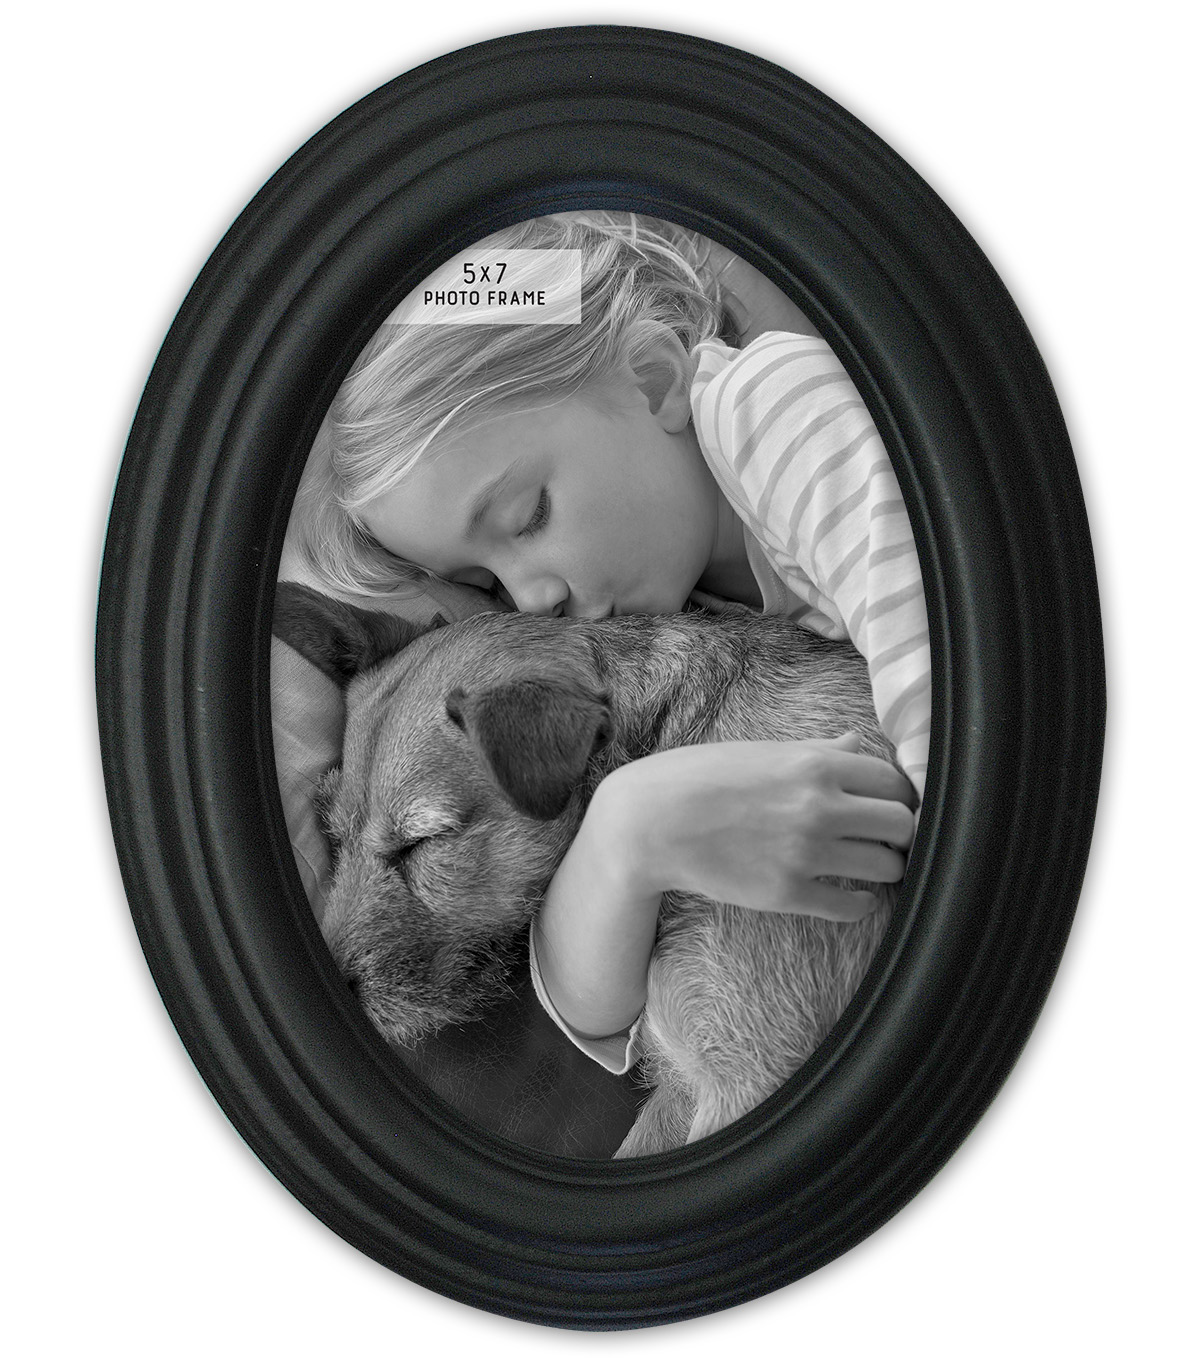 Oval Distressed Black Photo Frame Joann